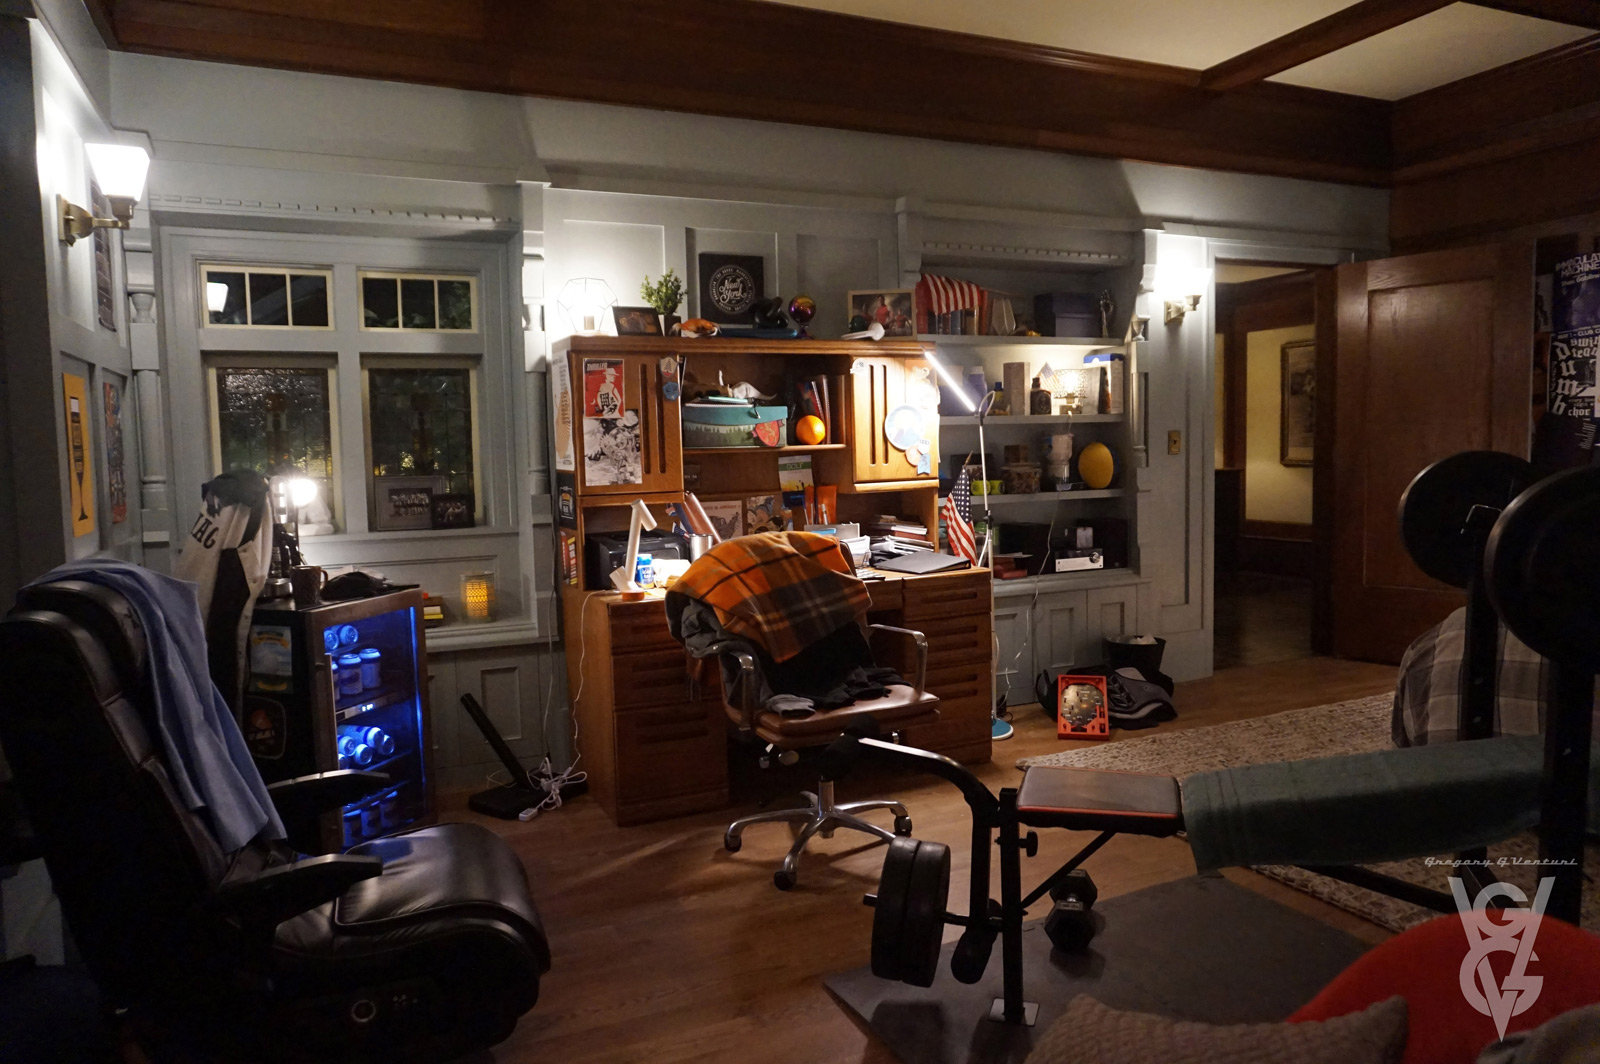 CHARMED: S1 - PARKER'S DORM ROOM - SET PHOTO